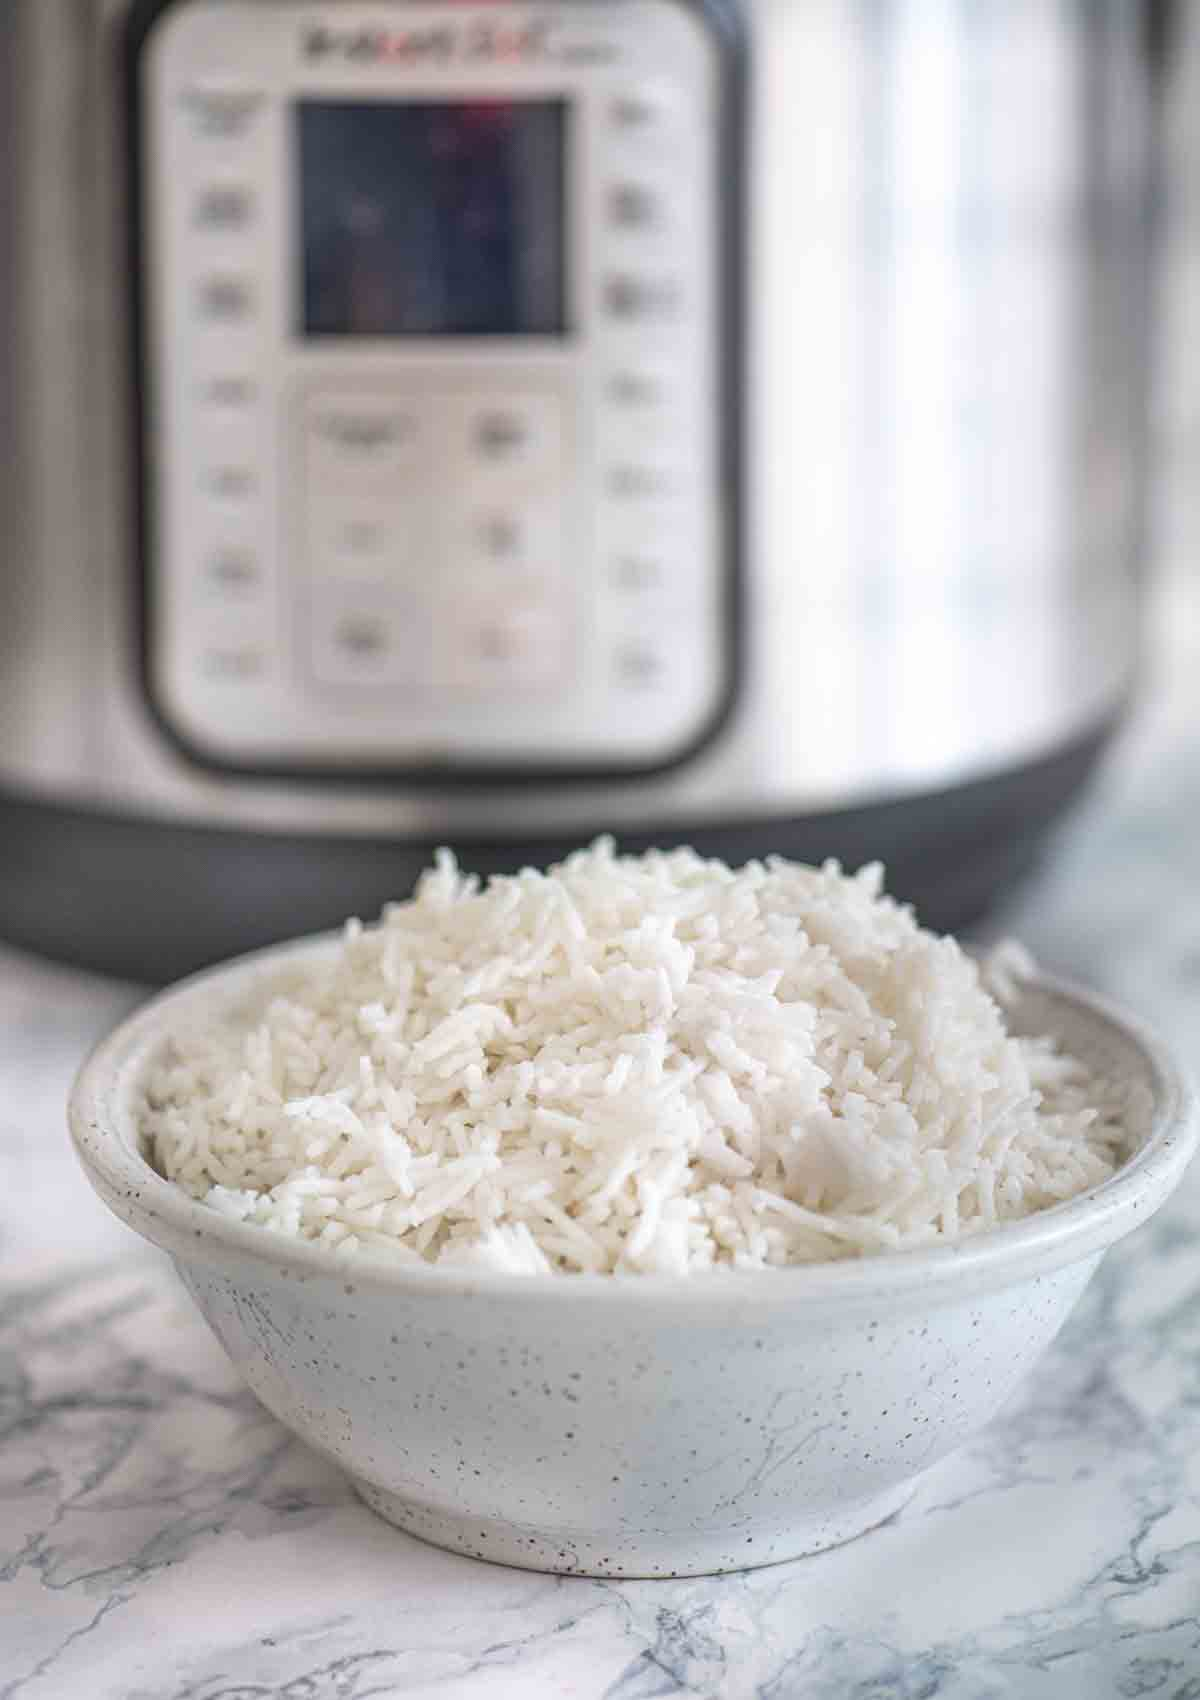 A bowl of rice in front of an Instant Pot